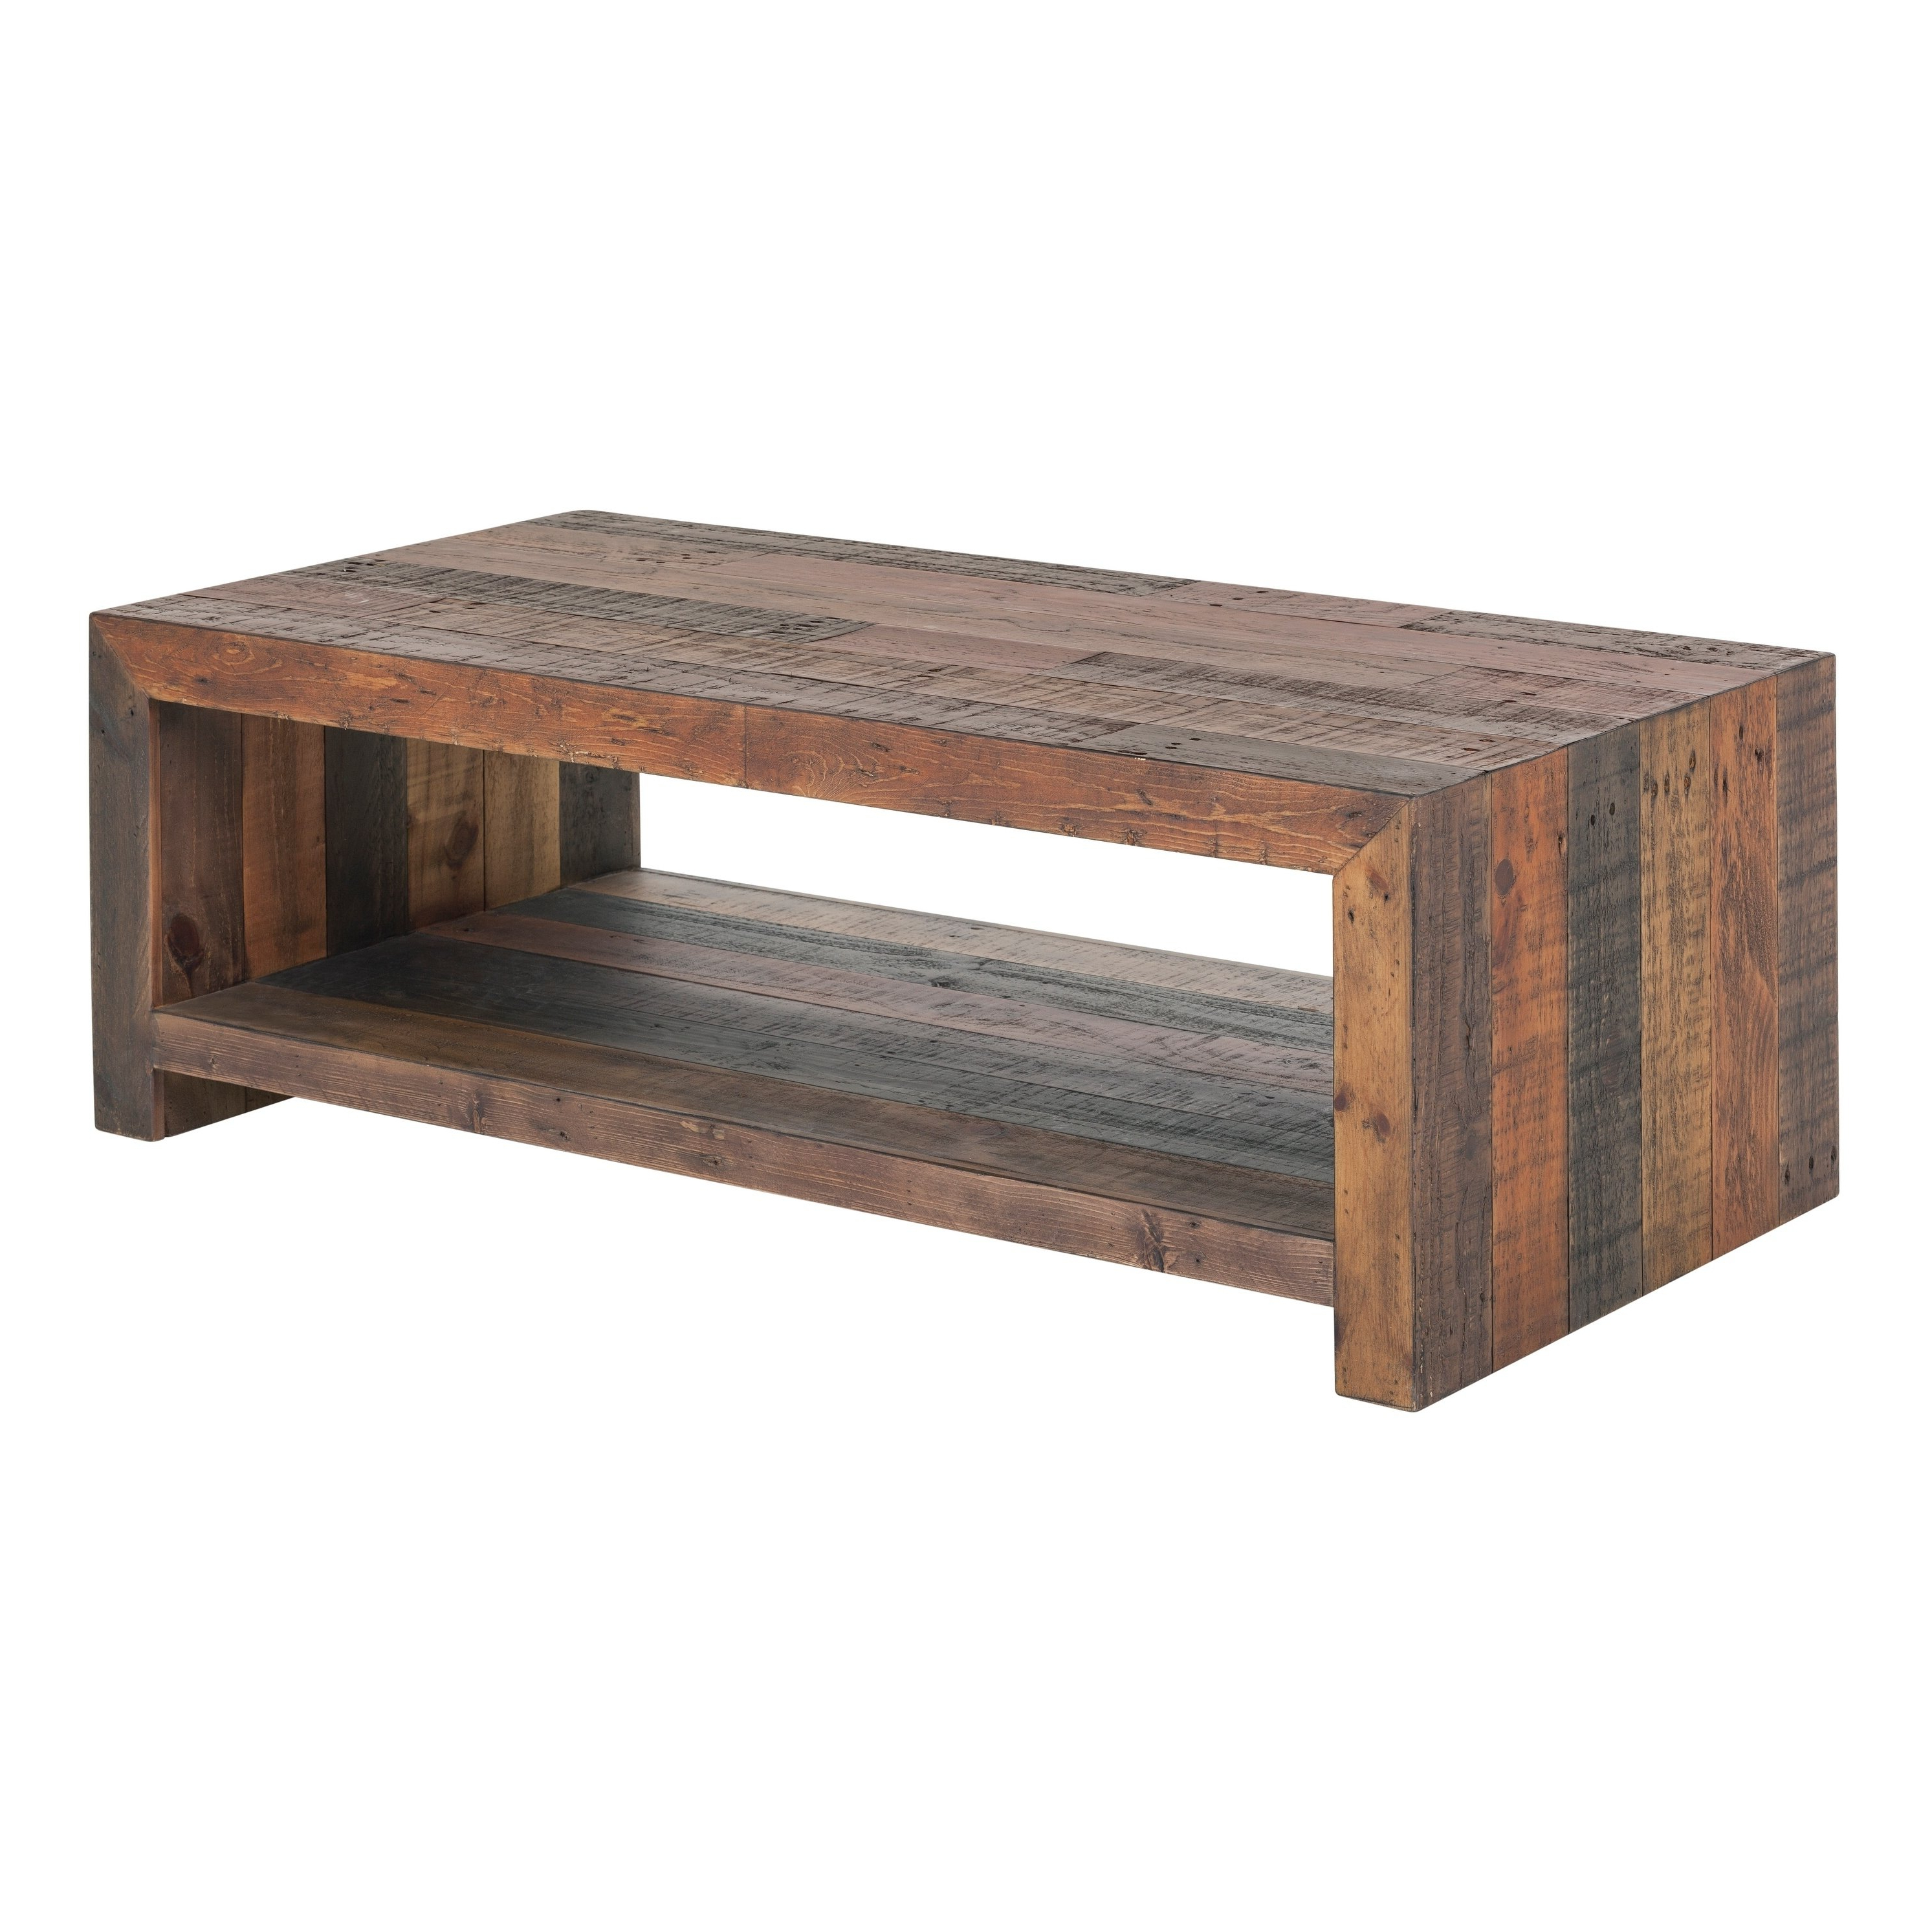 Most Popular Vintage Wood Coffee Tables Inside Shop Aurelle Home Vintage Antique Bright Wood Coffee Table – On Sale (View 10 of 20)